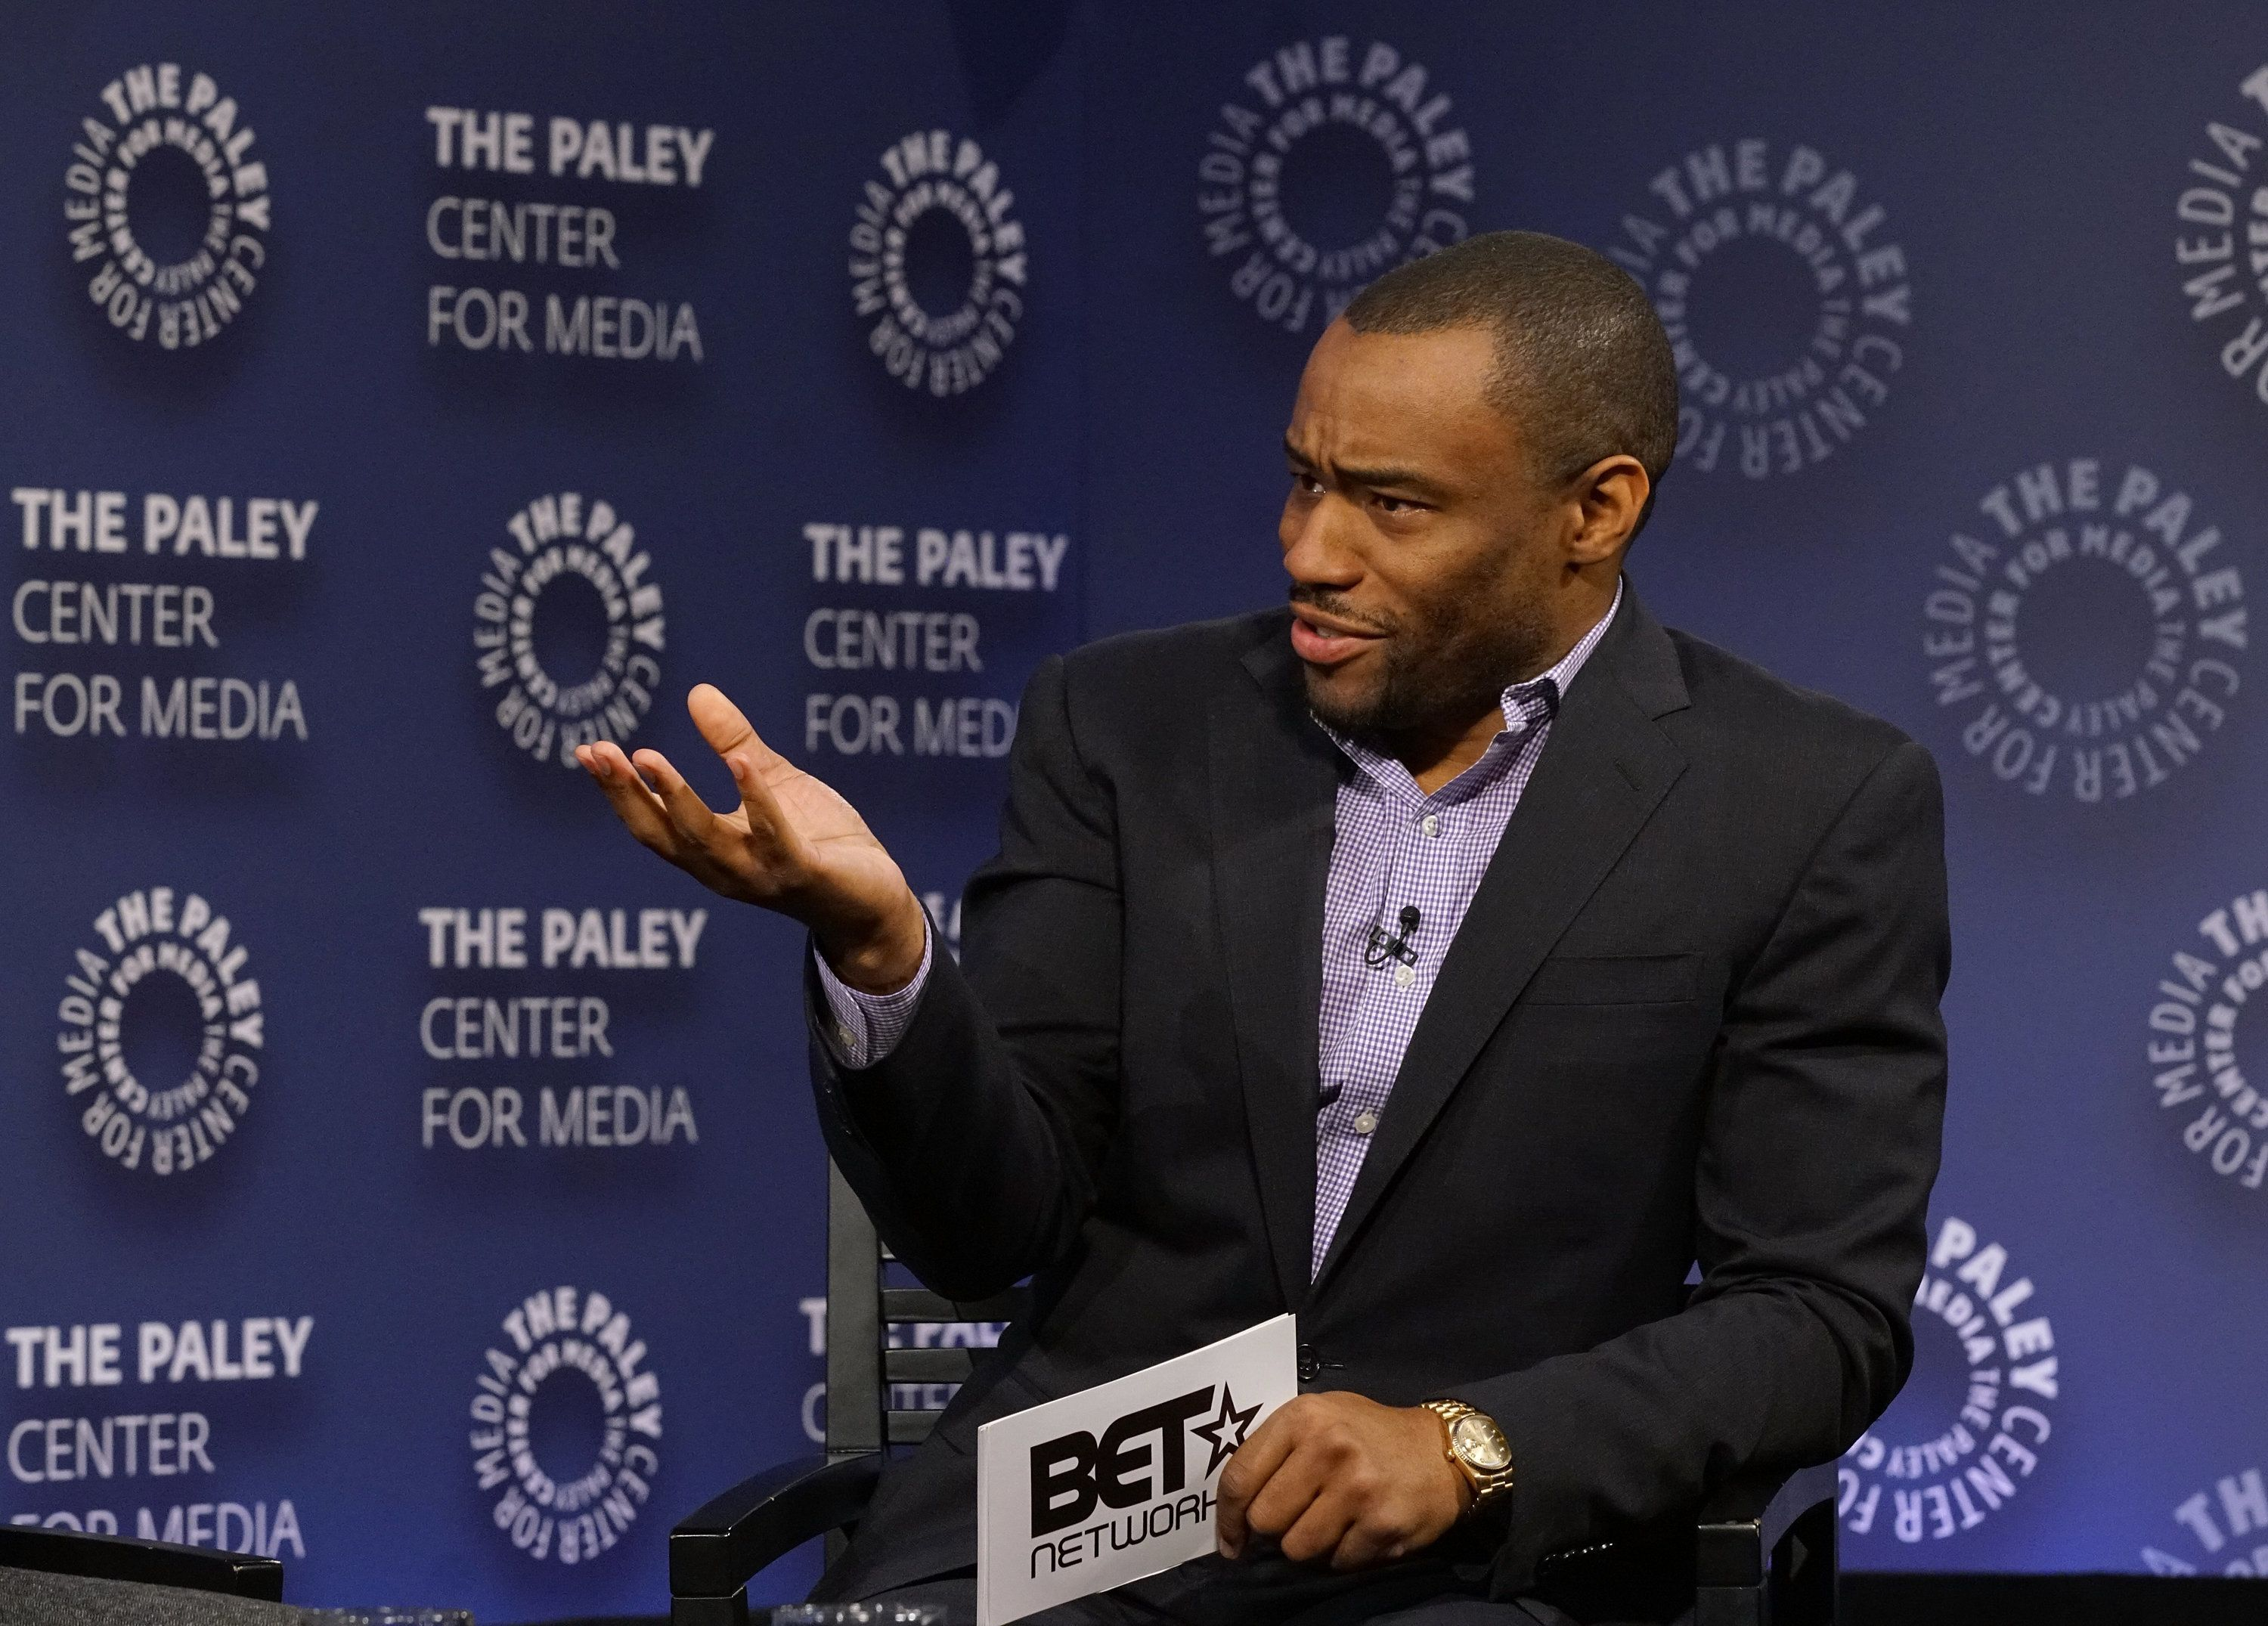 NEW YORK, NY - DECEMBER 07:  Moderator Marc Lamont Hill attends BET Presents 'An Evening With 'The Quad'' At The Paley Center on December 7, 2016 in New York City.  (Photo by Bennett Raglin/Getty Images for BET Networks)